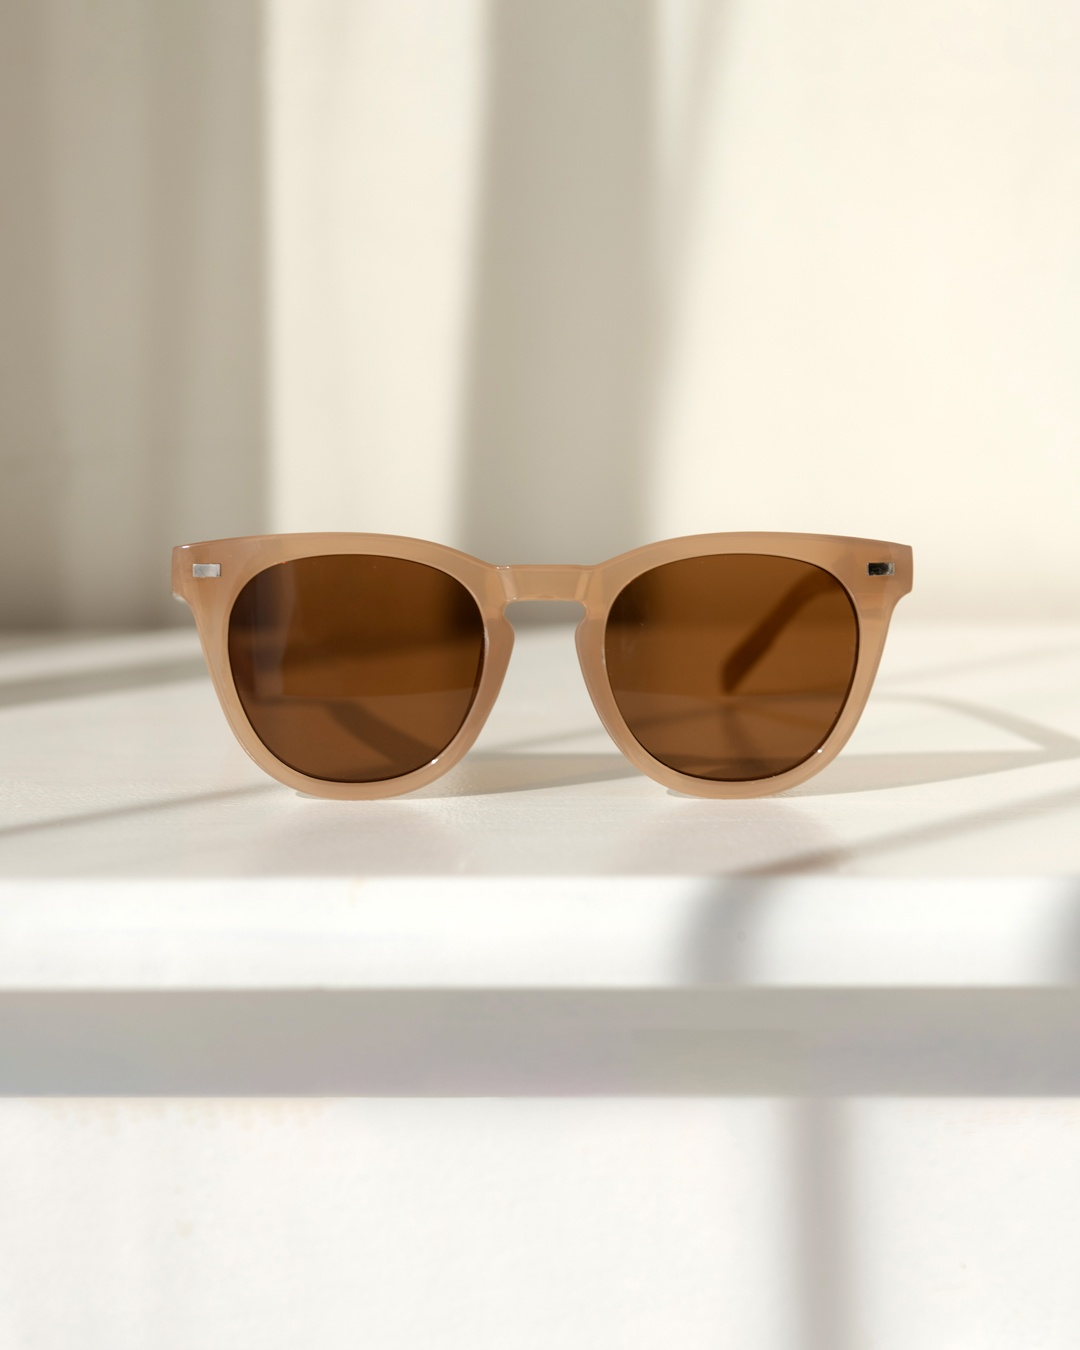 Neutral Sunglasses with a mocha coloured frame and brown lens tint sit on top of a white surface.